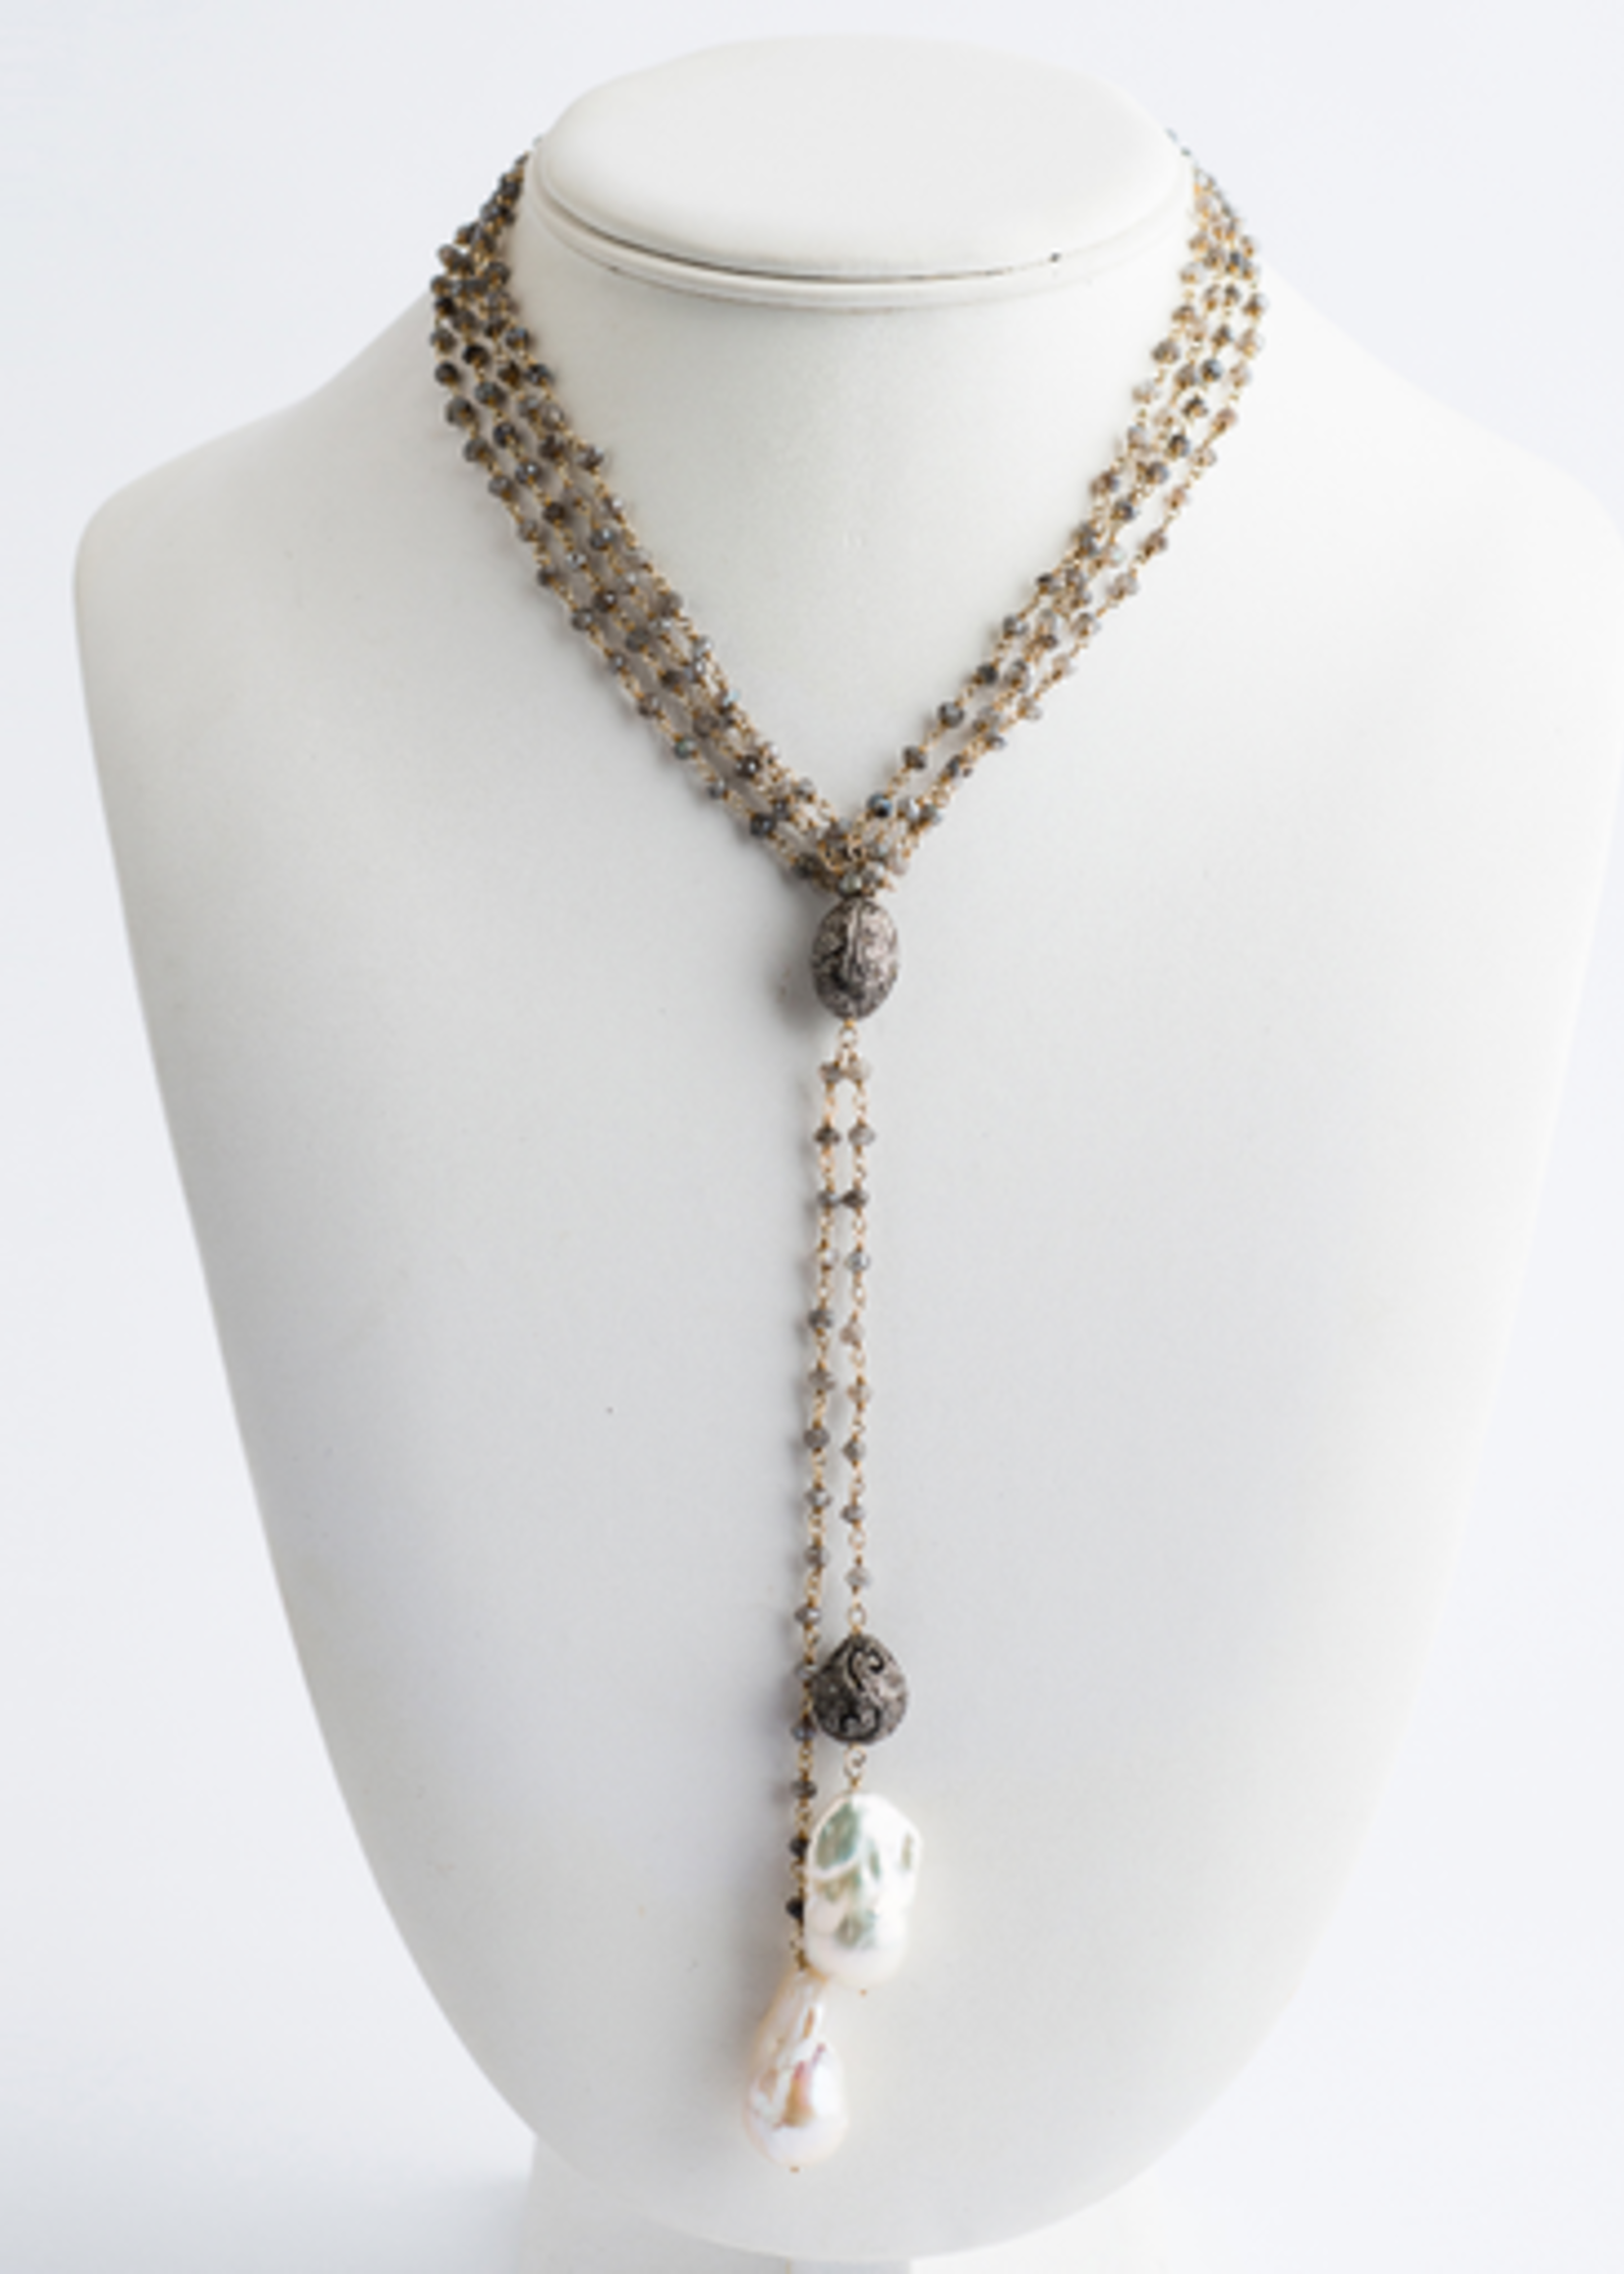 Mina Danielle Double Moonstone & Gold Chain with 2 Hanging Baroque Pearls and Diamond Bead. Can be worn long or as a lariat